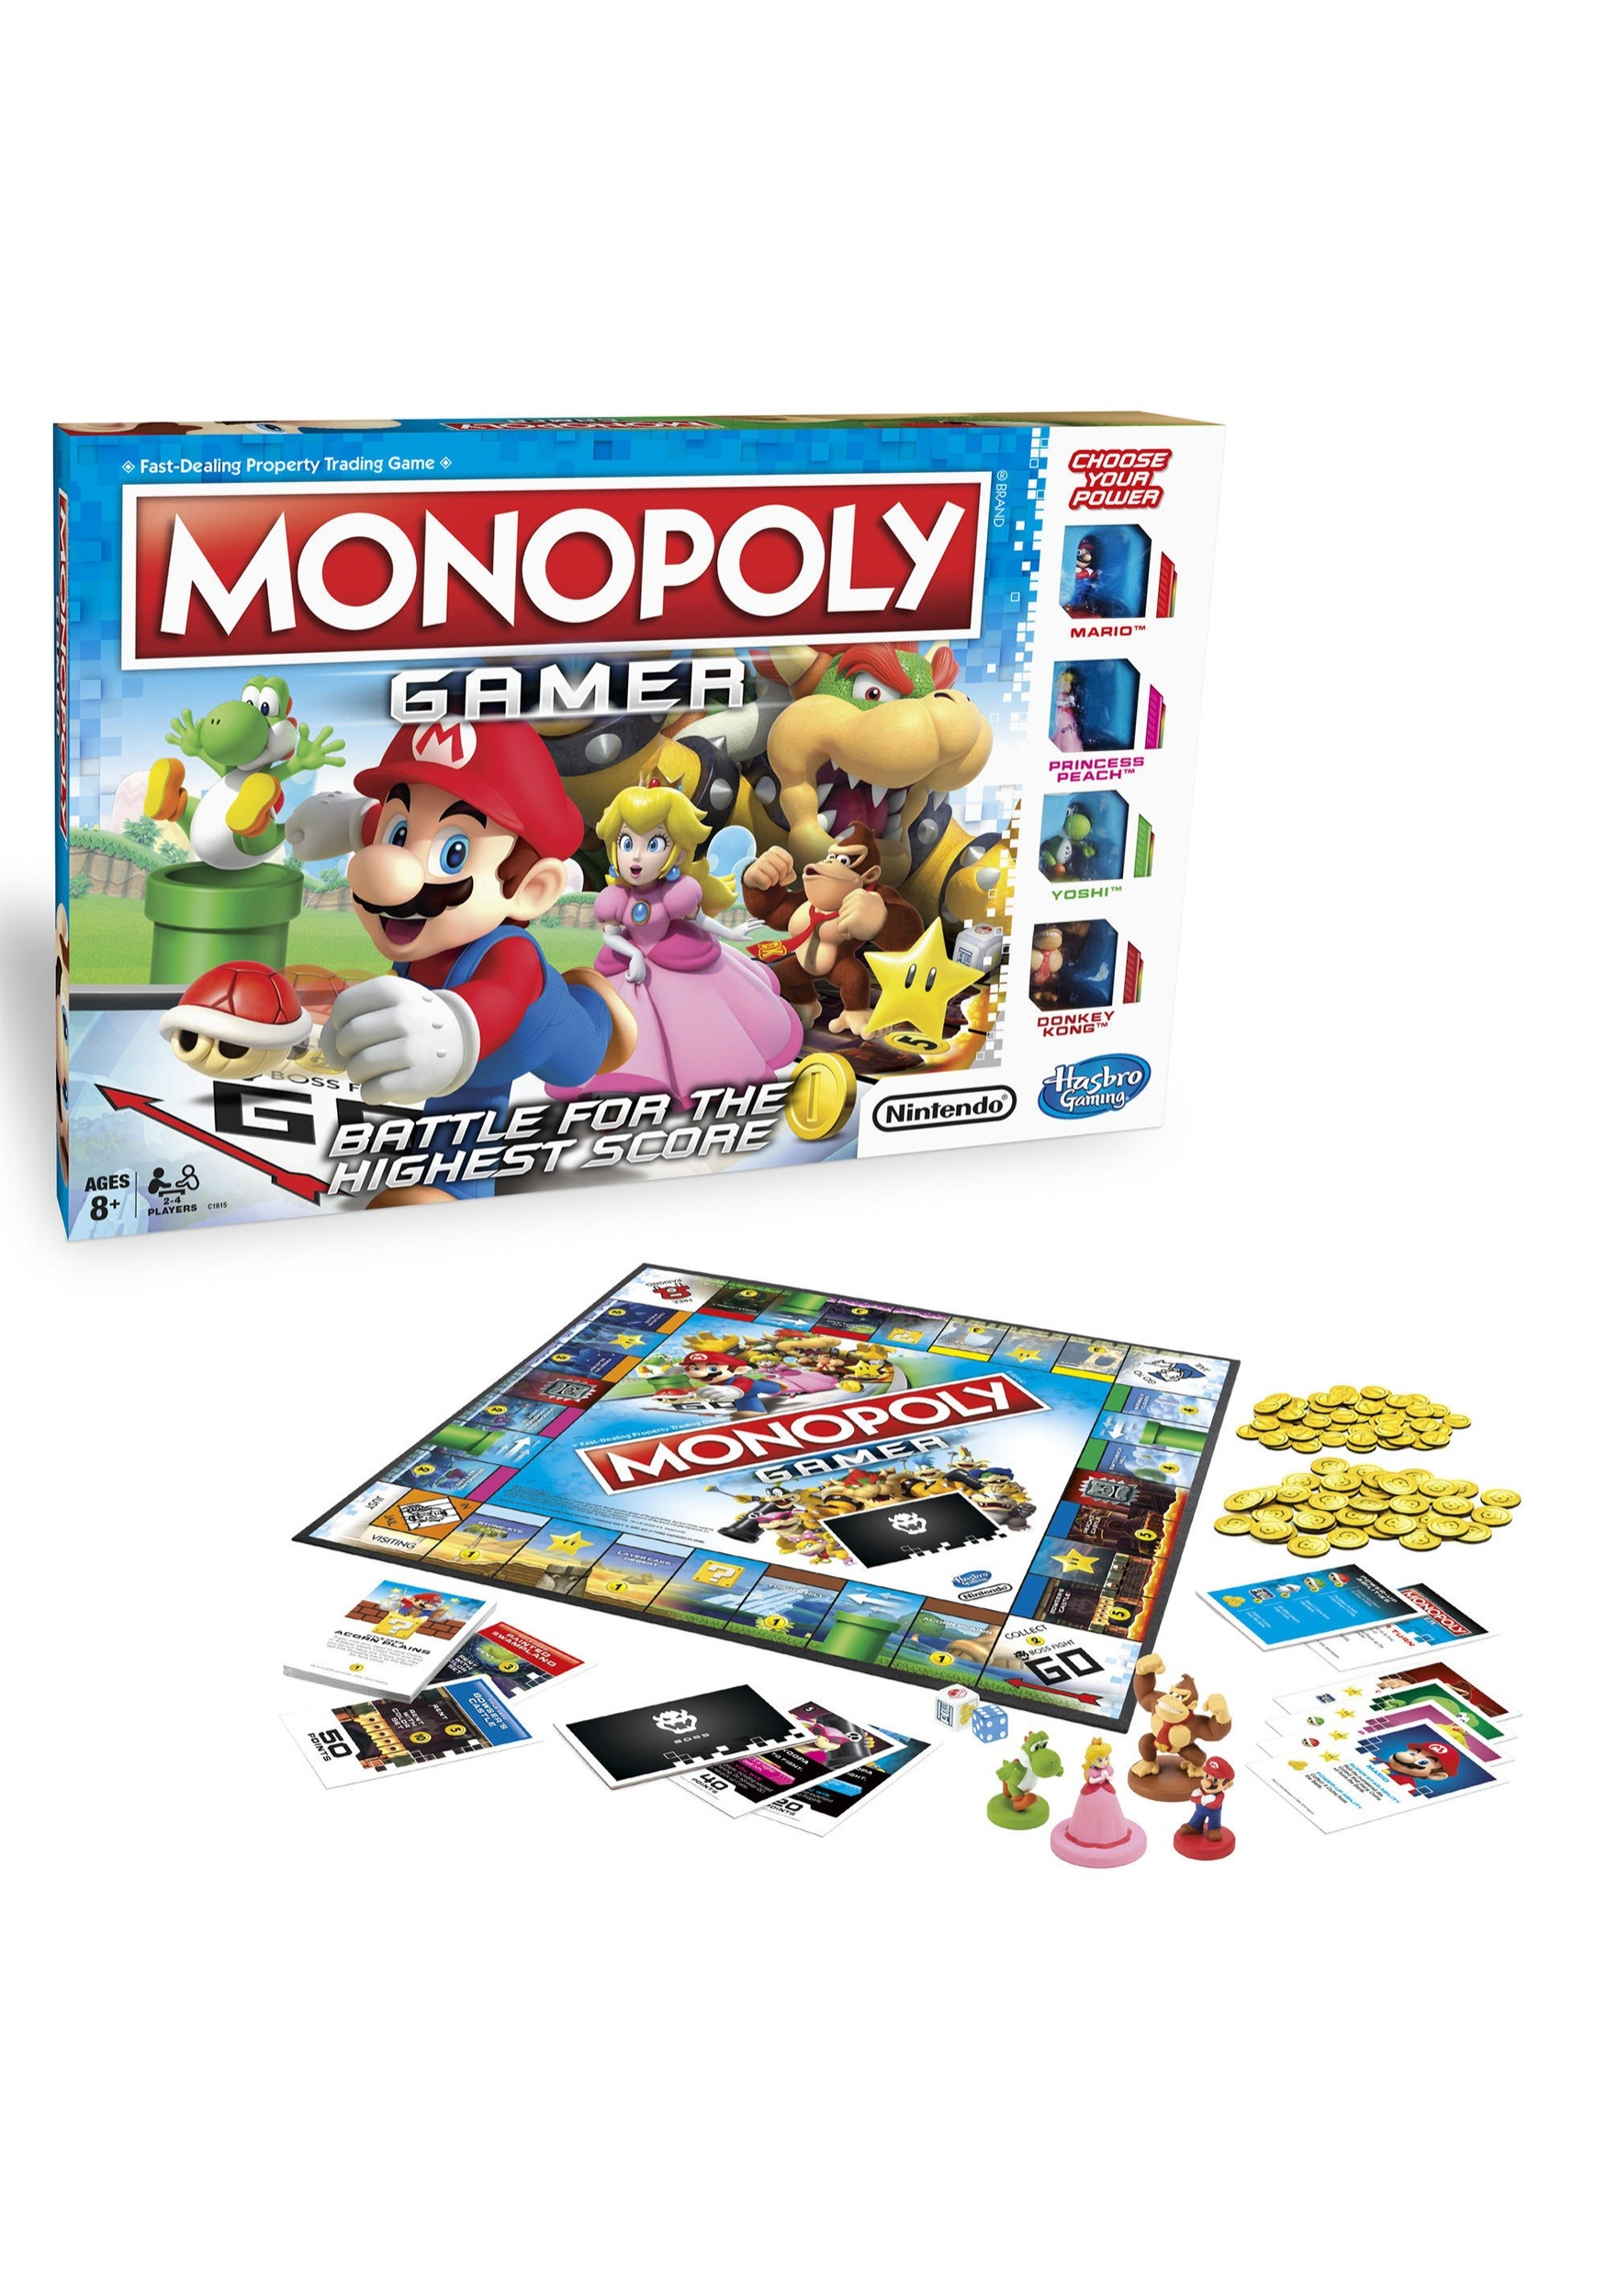 Monopoly Gamer Edition Game- Super Mario Brothers